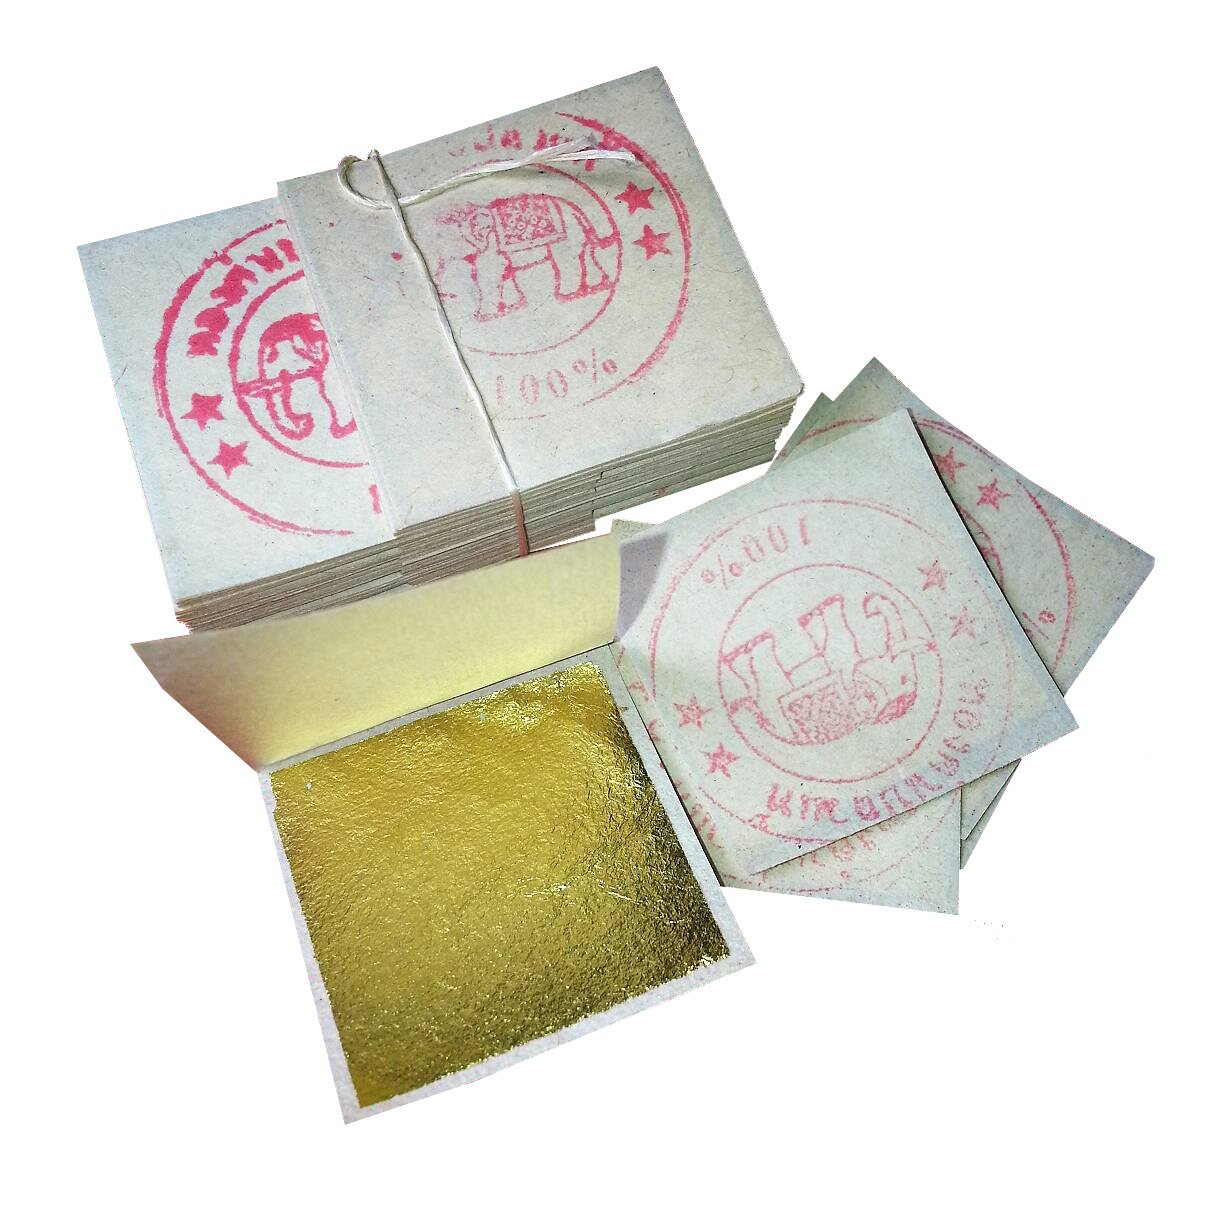 500 Pieces of Gold Leaf for Spa, Food, Art, Framing, Gilding, Facial (3 Cm X 3 Cm) - 100% Real Gold (24k)